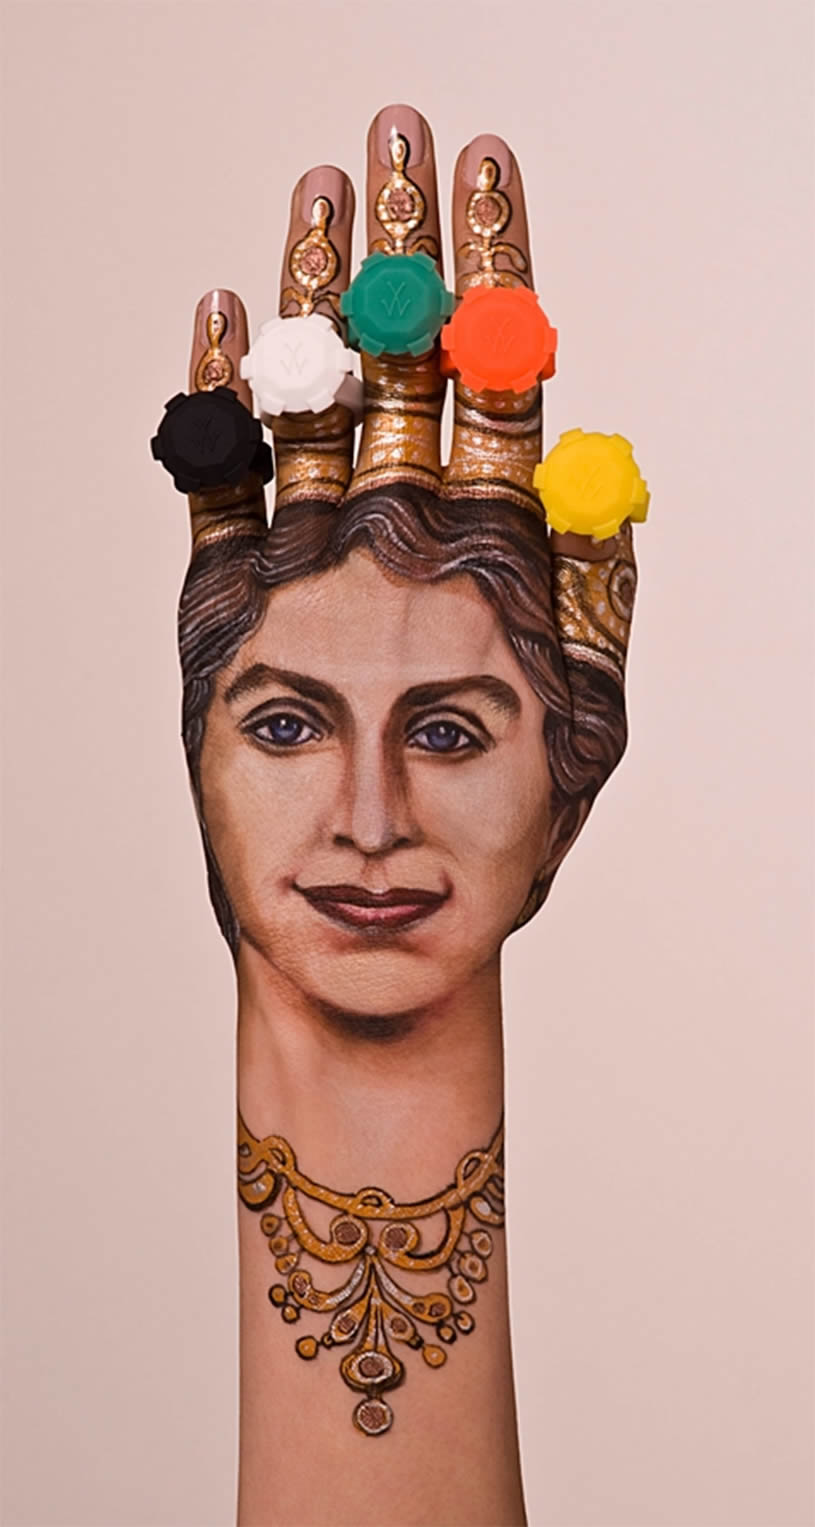 Queen, hand painting by Guido Danielle